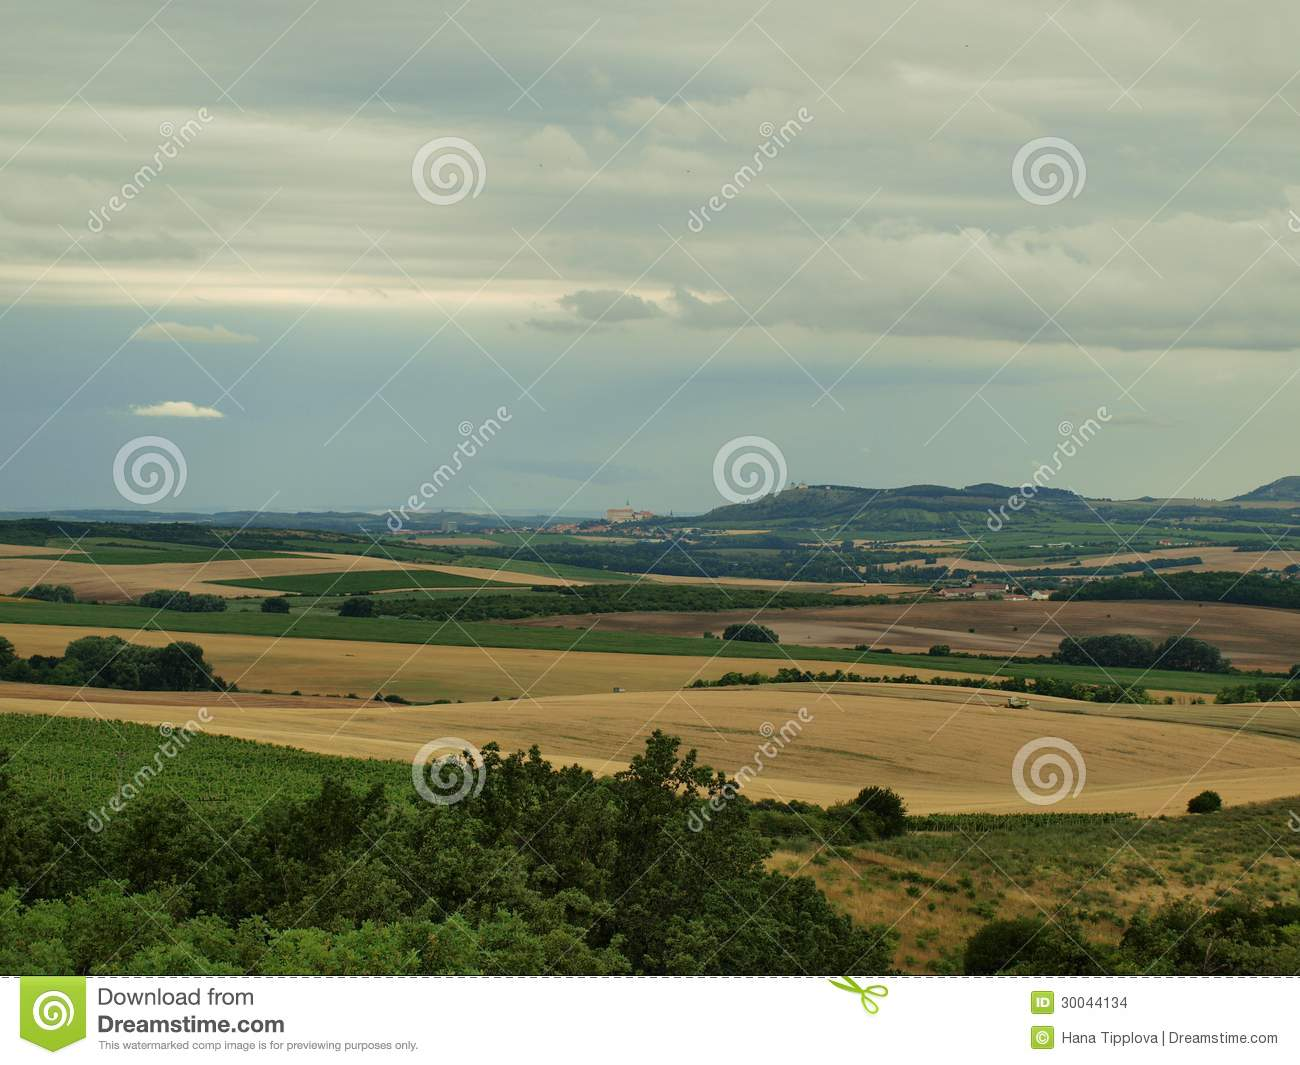 View of the landscape of South Moravia